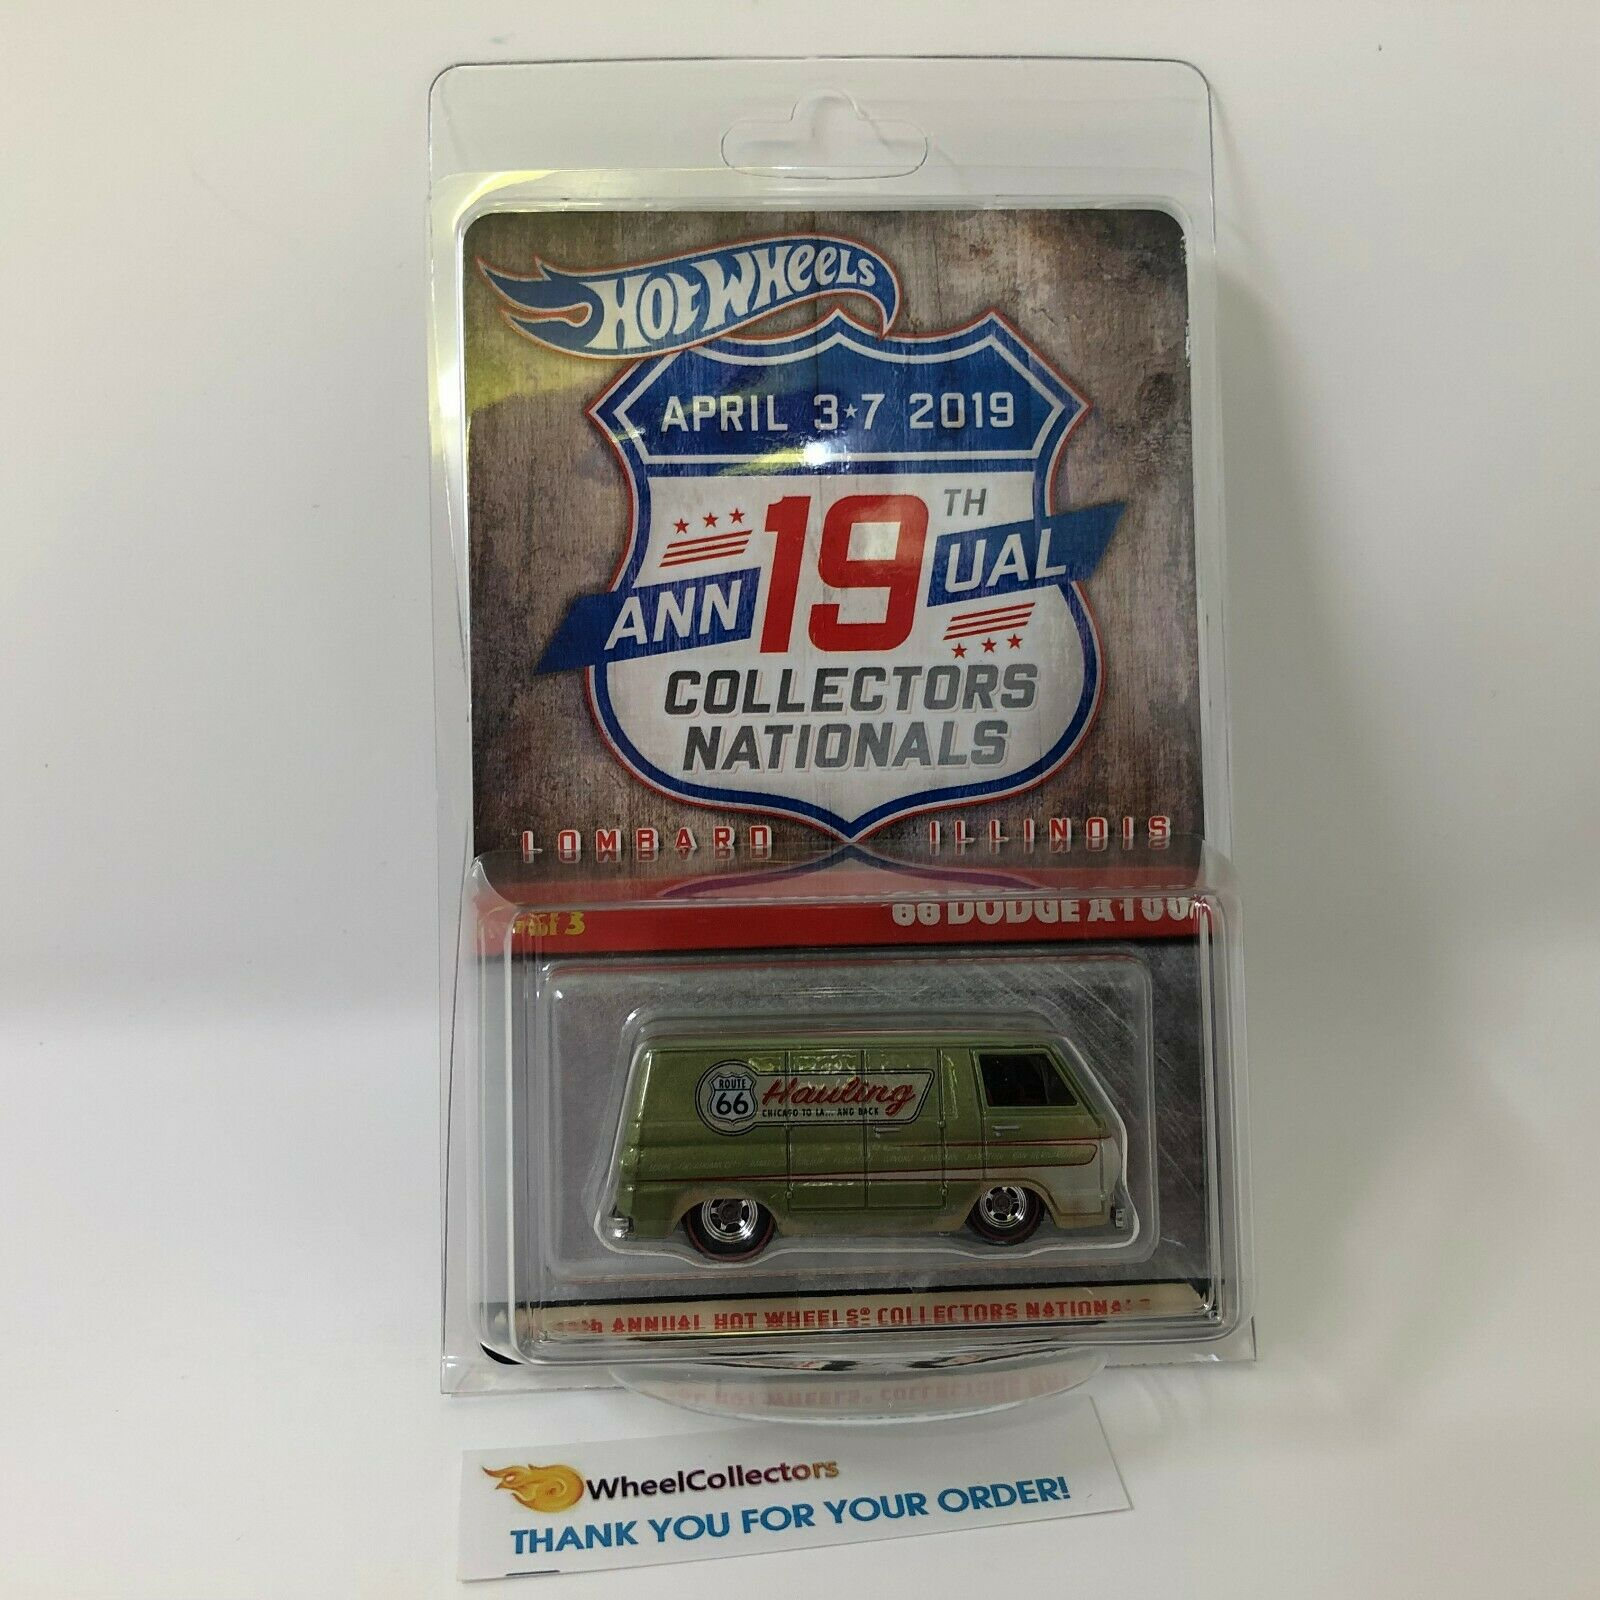 '66 Dodge A100 finale voiture  HOT WHEELS 19th ressortissants Convention  WC17